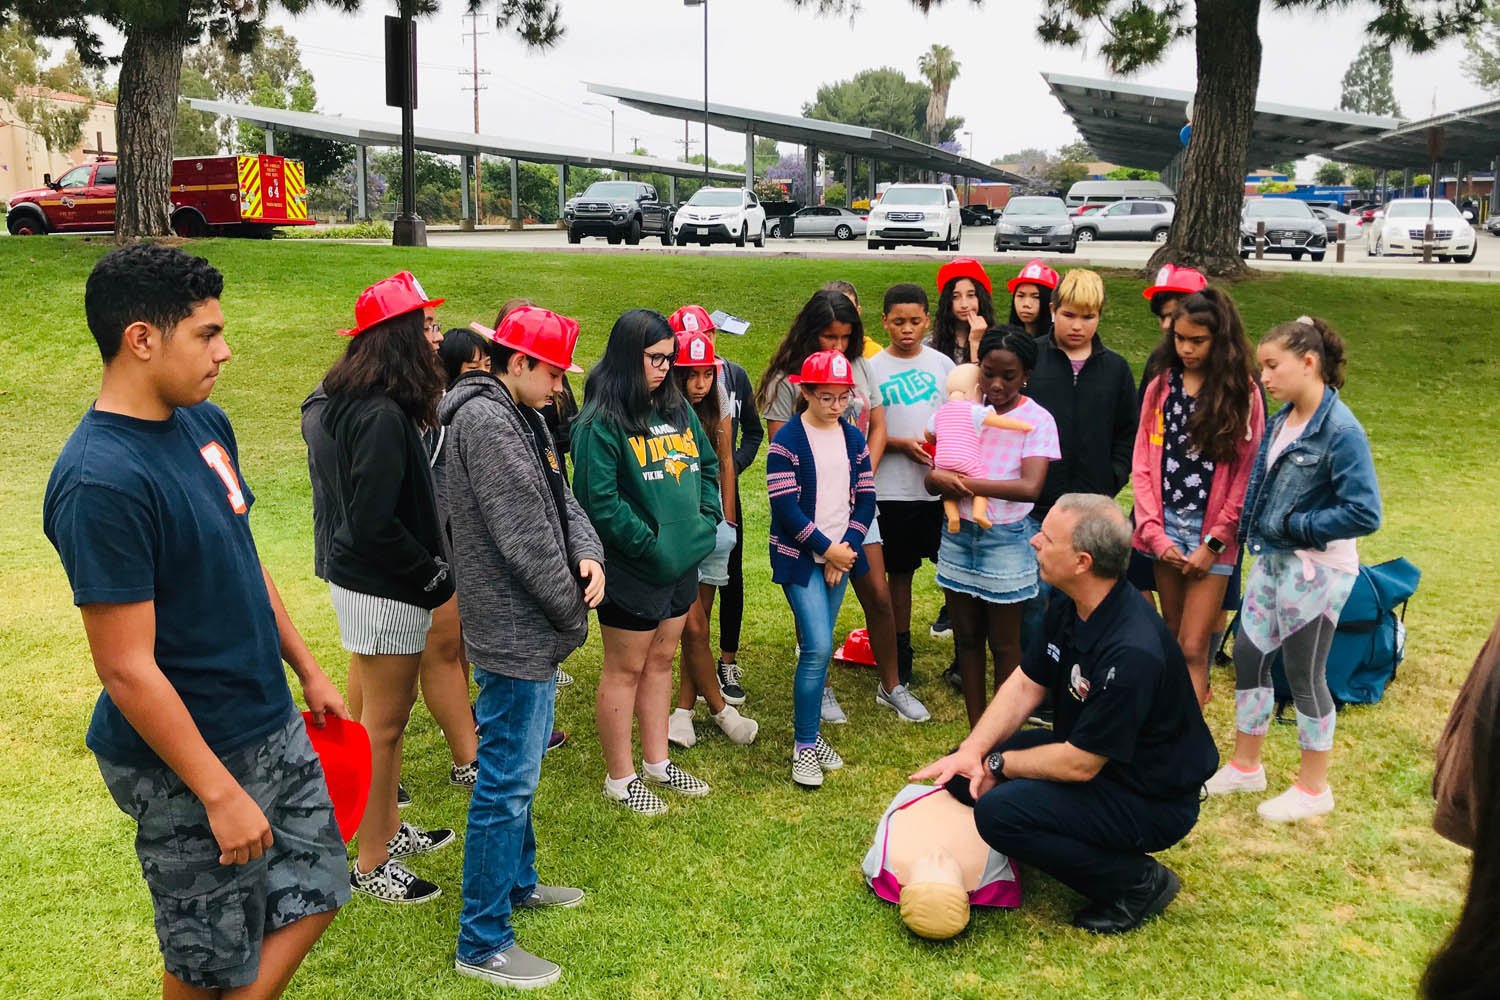 On Thursday, June 20, 2019, the City of San Dimas hosted an open house at its recreation center.